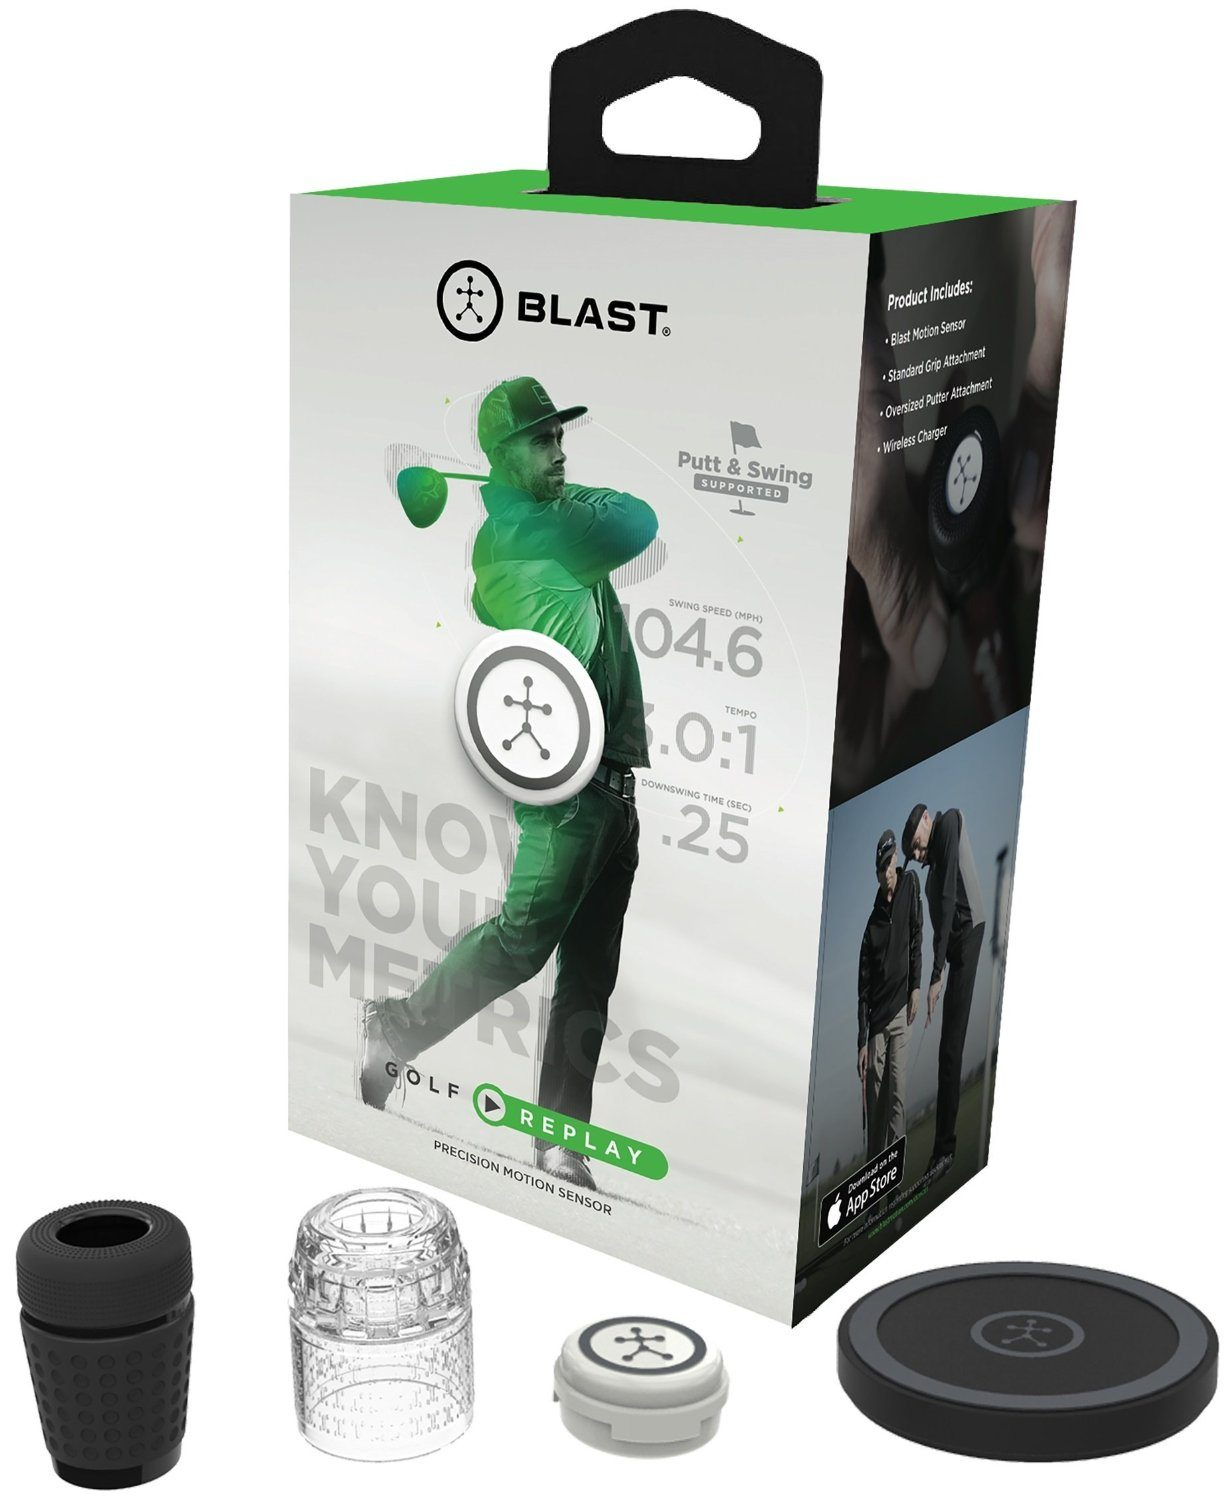 blast motion golf captures metrics and highlights so you can train like a pro 6 - Blast Motion Golf captures metrics and highlights so you can train like a pro